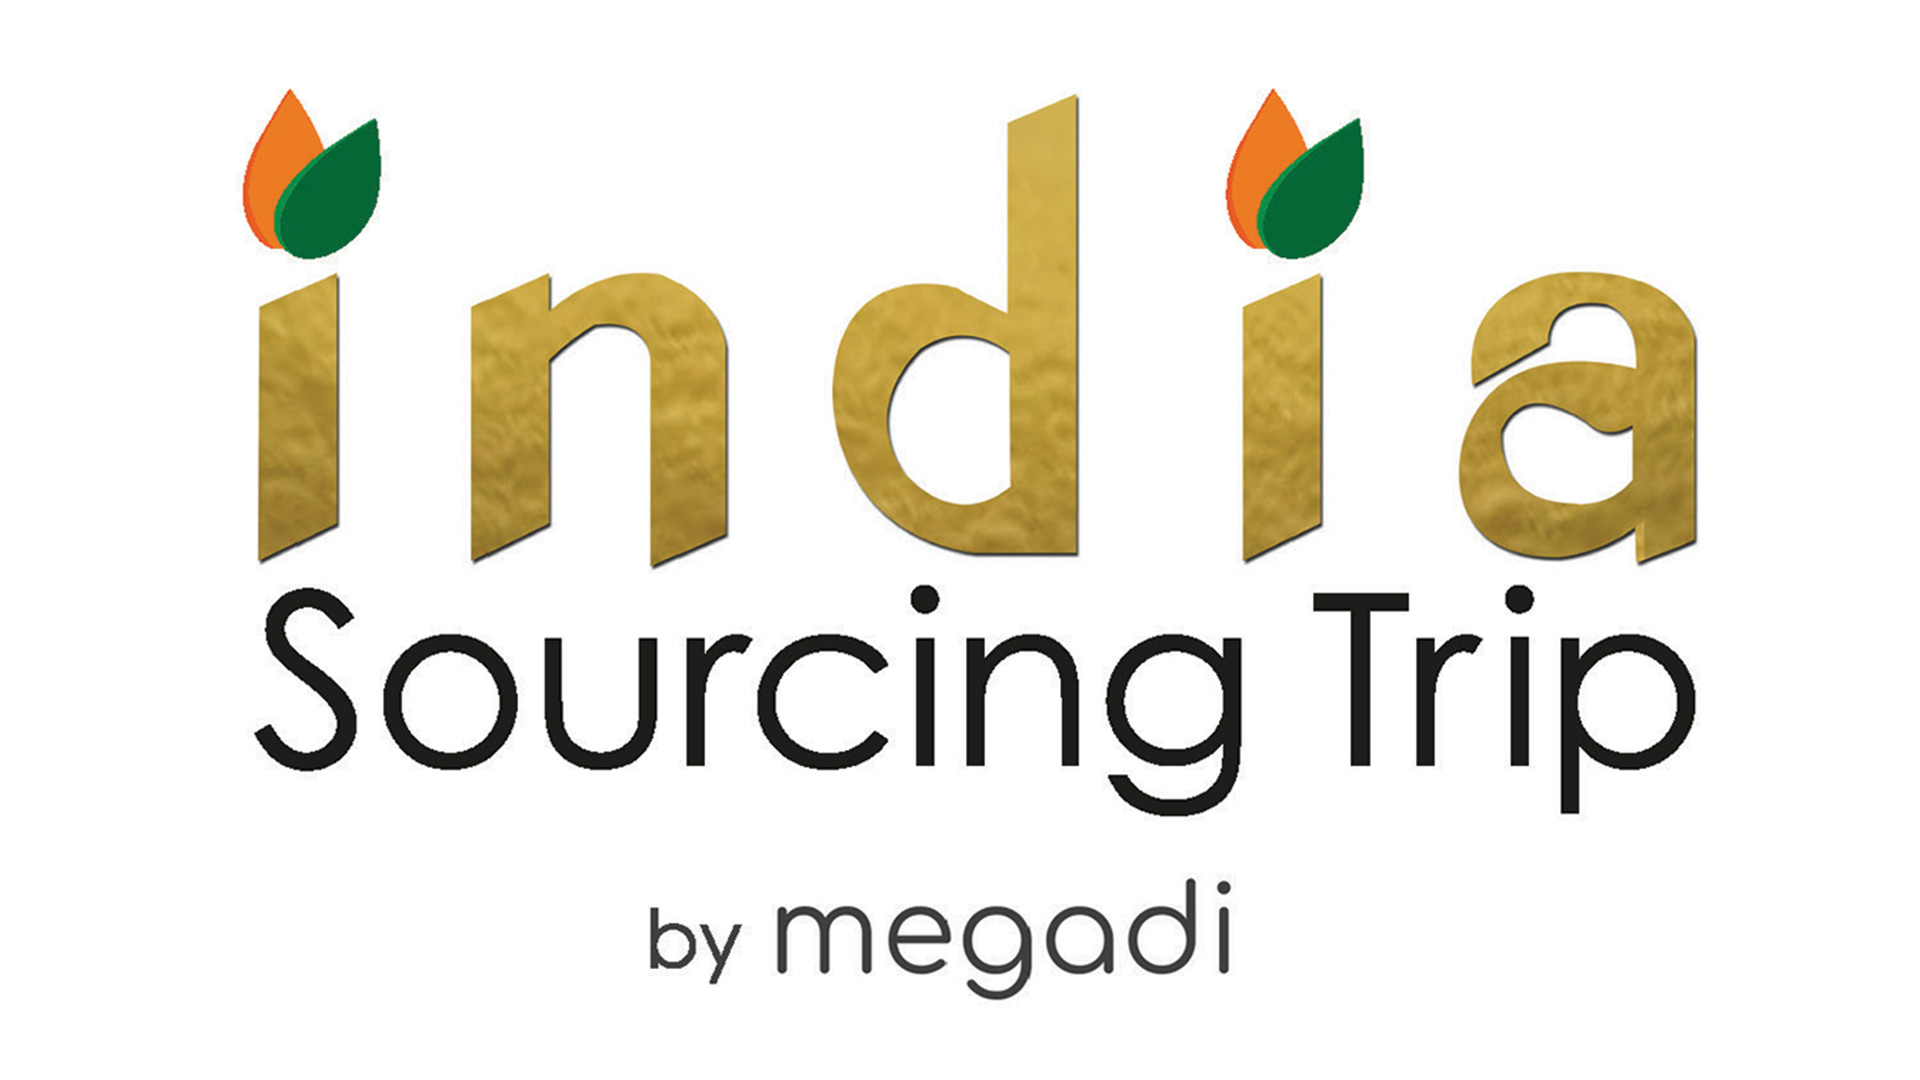 India Sourcing Trip